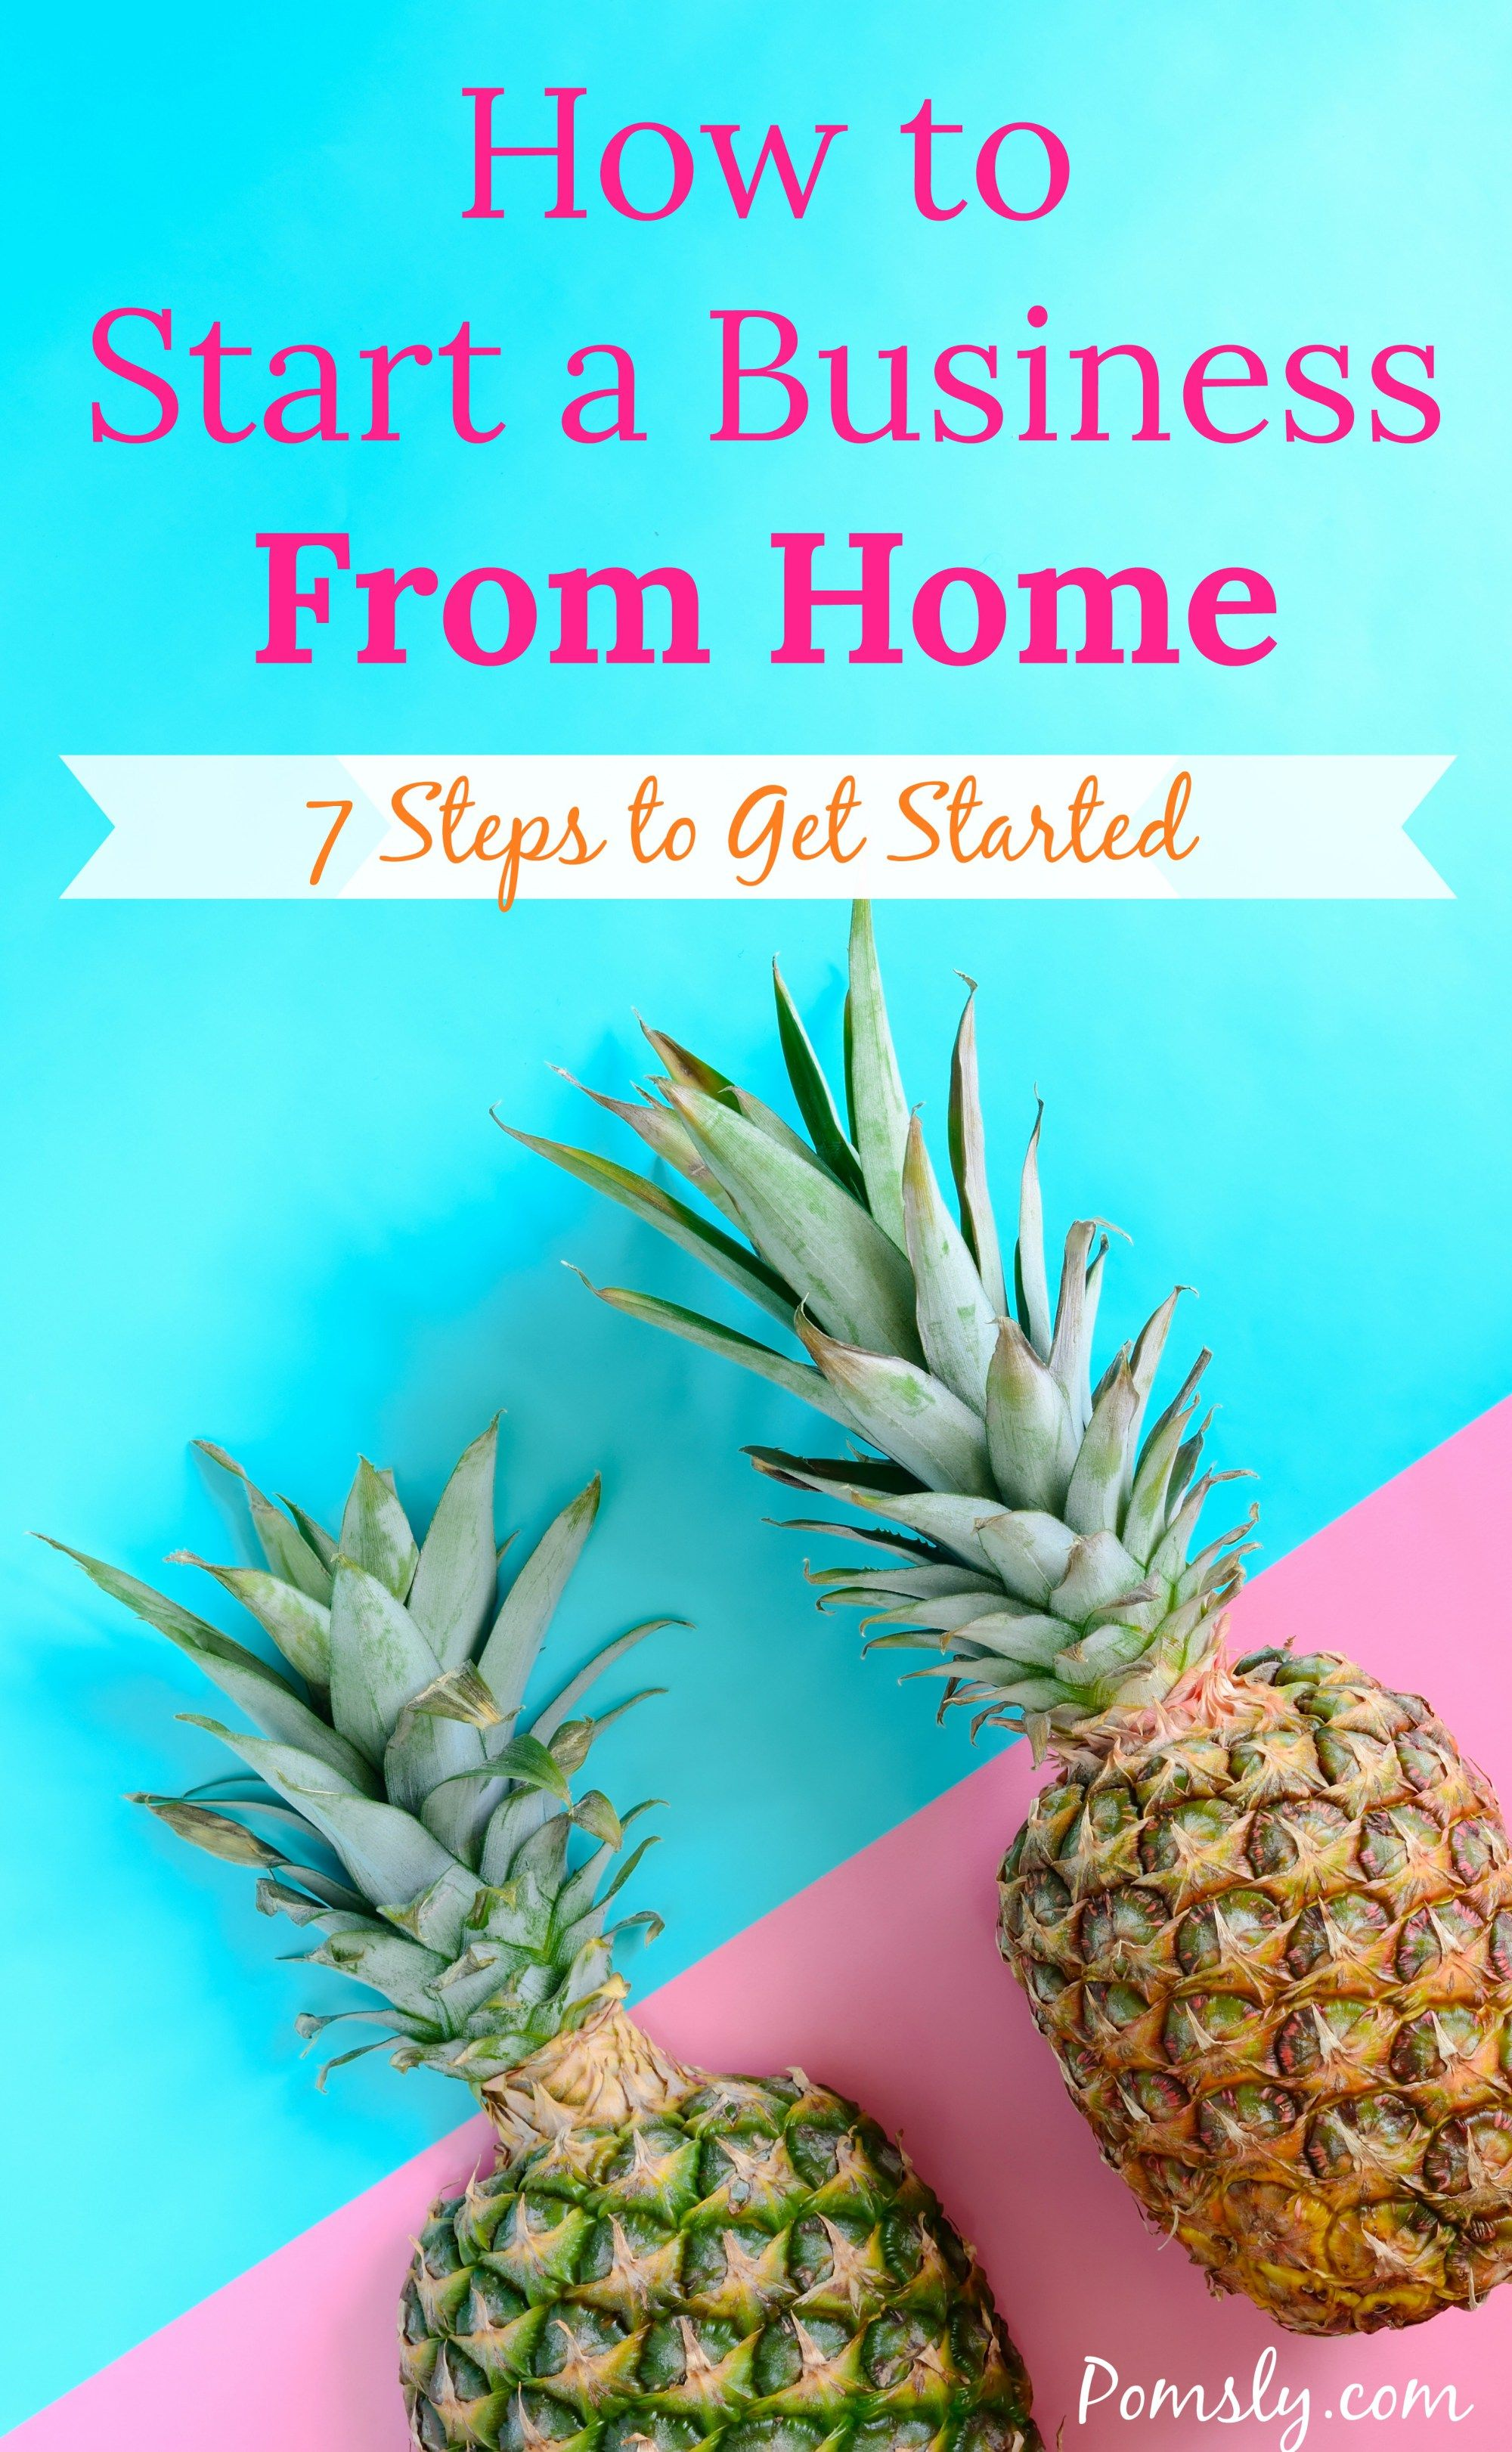 How To Start A Business From Home 7 Steps Get Started